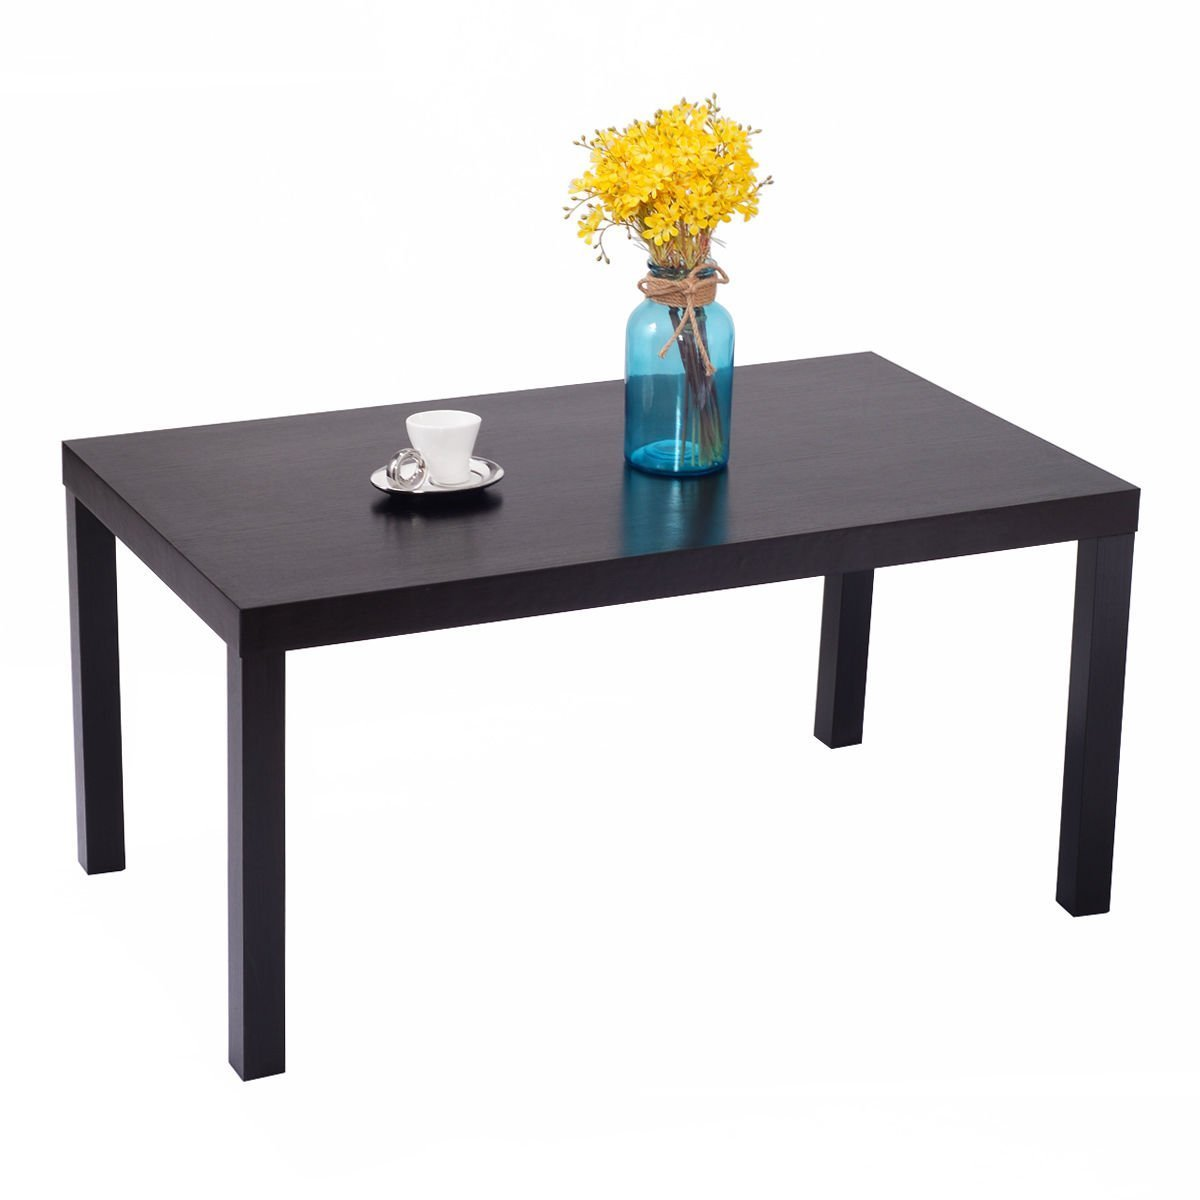 Giantex Rectangular Wood Black Coffee Table One-Layer Modern End Table For Living Room